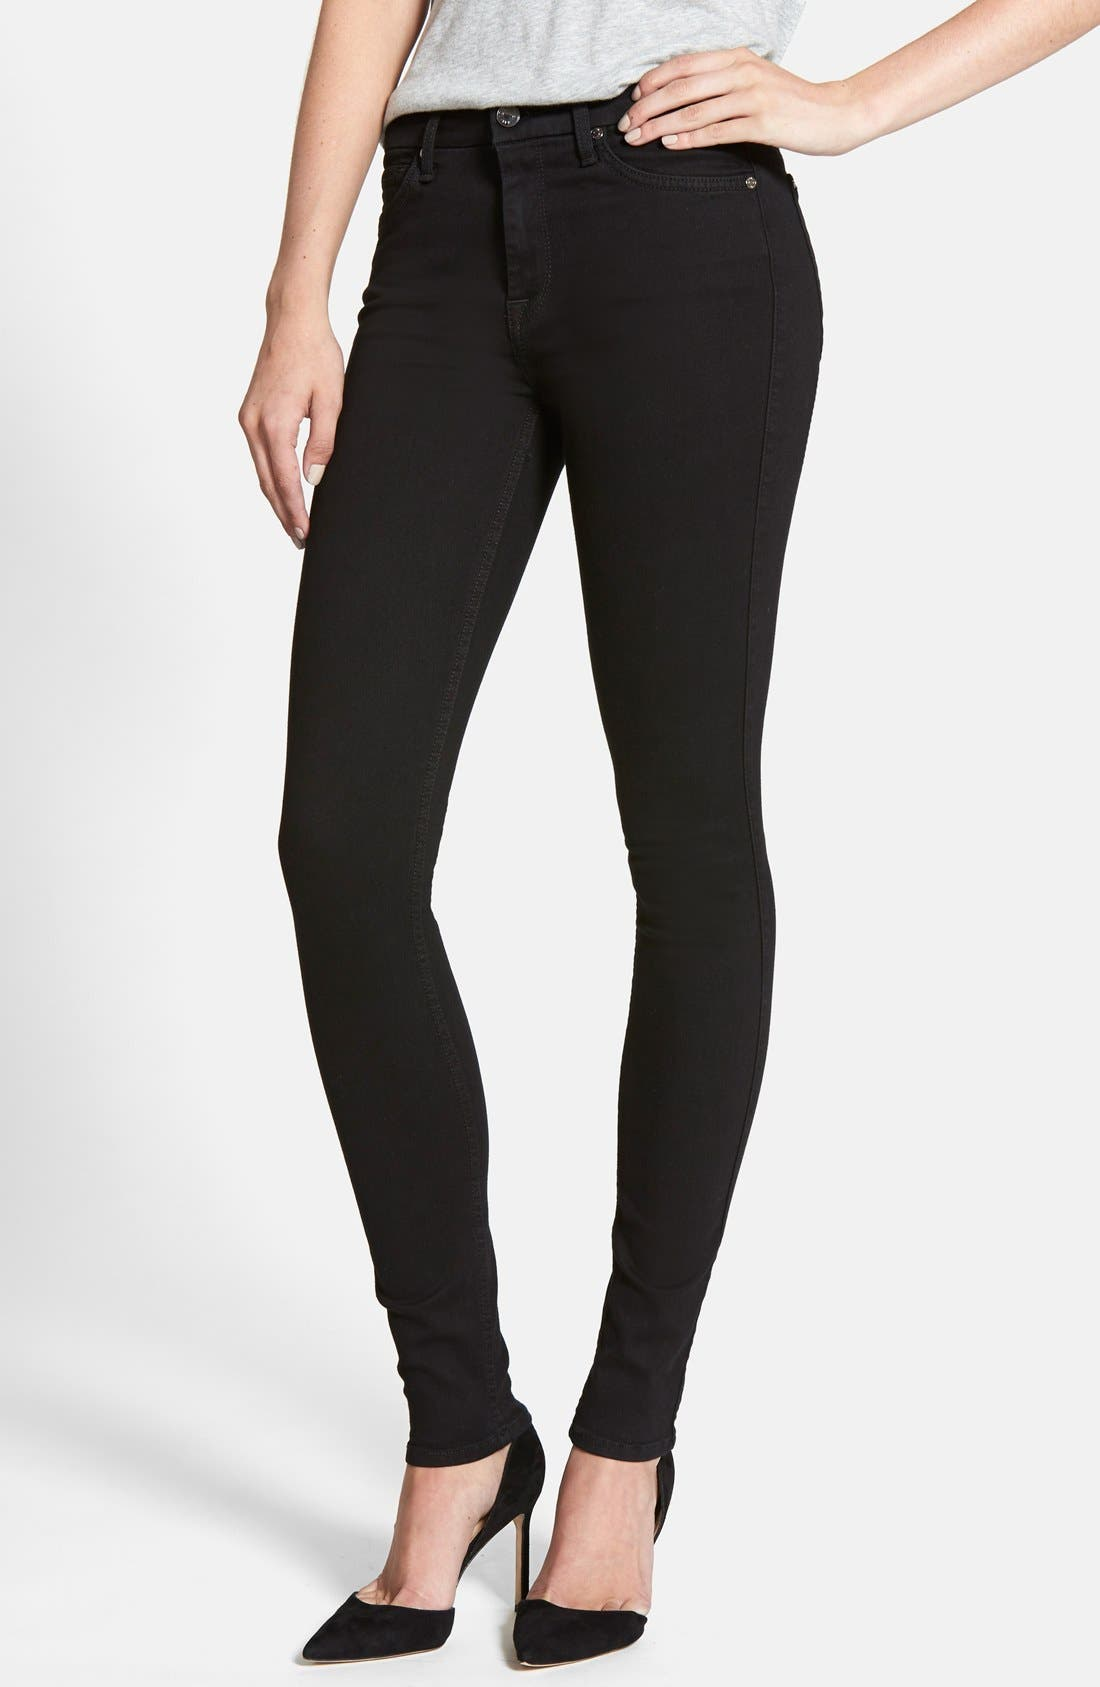 'Slim Illusion Luxe' High Waist Skinny Jeans,                         Main,                         color, 004